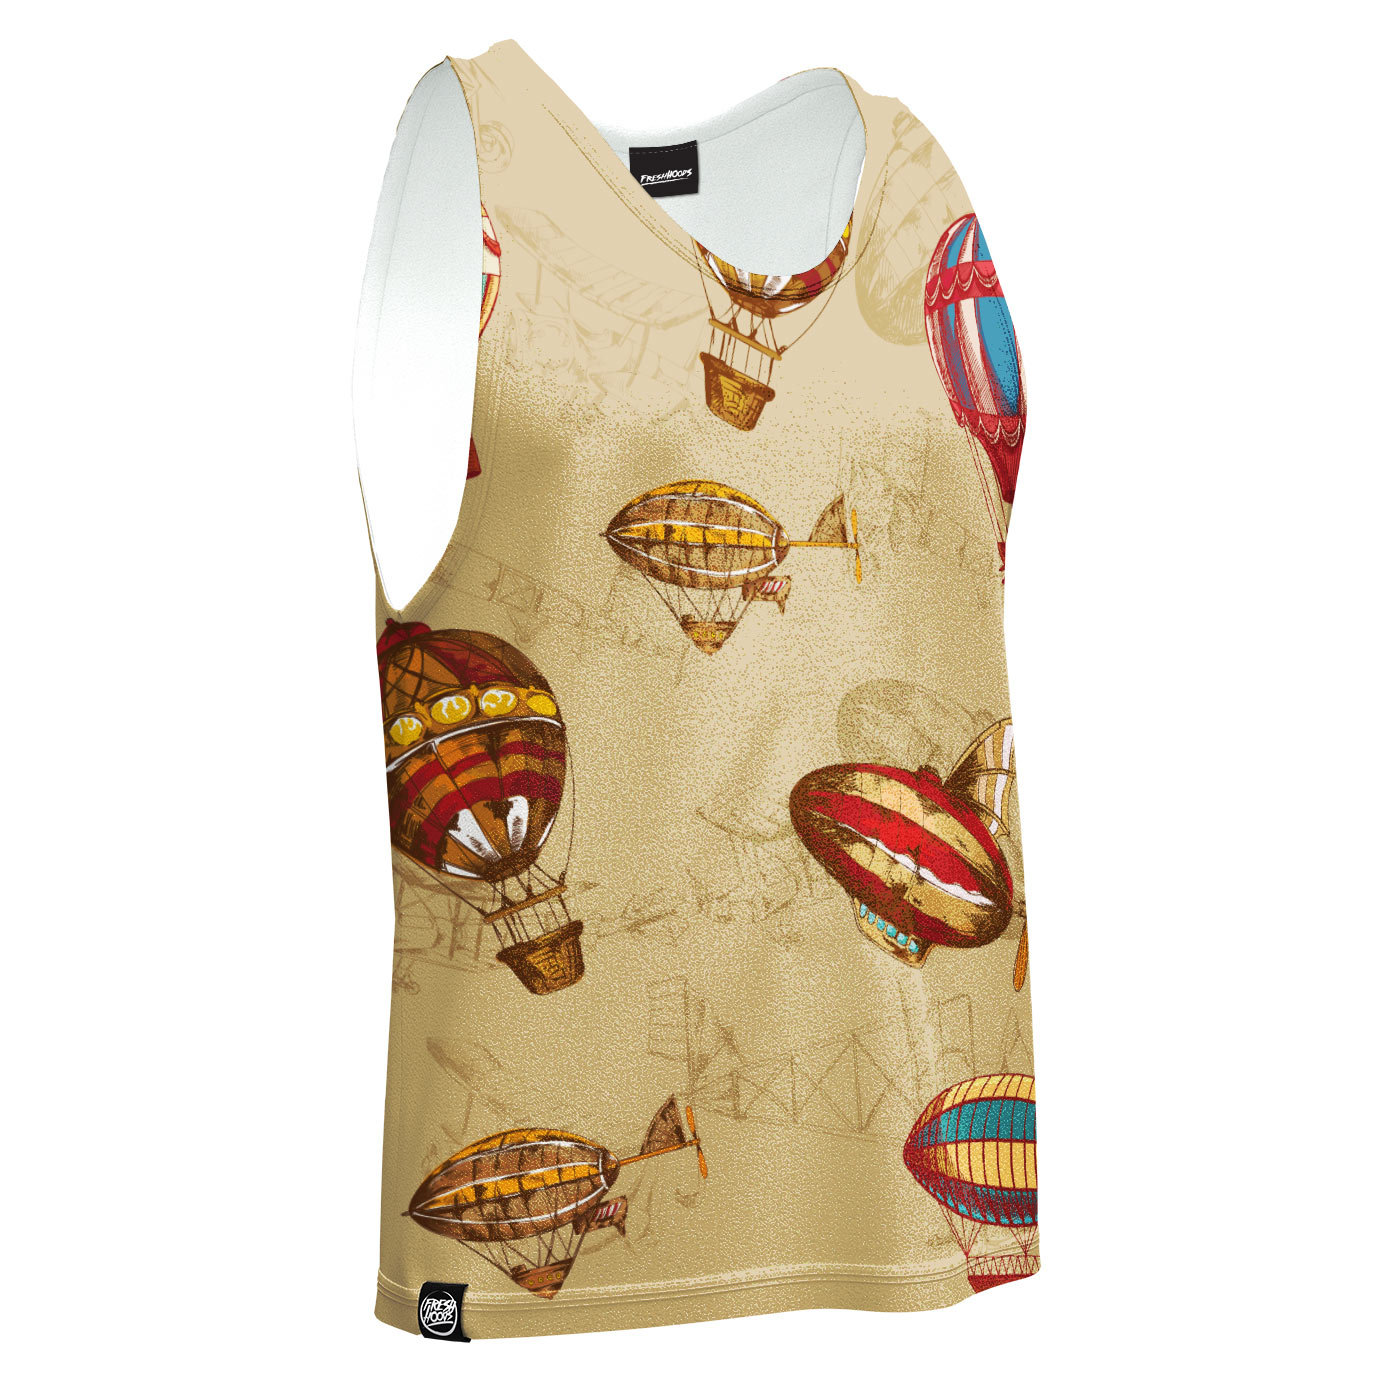 Dream Travel Tank Top